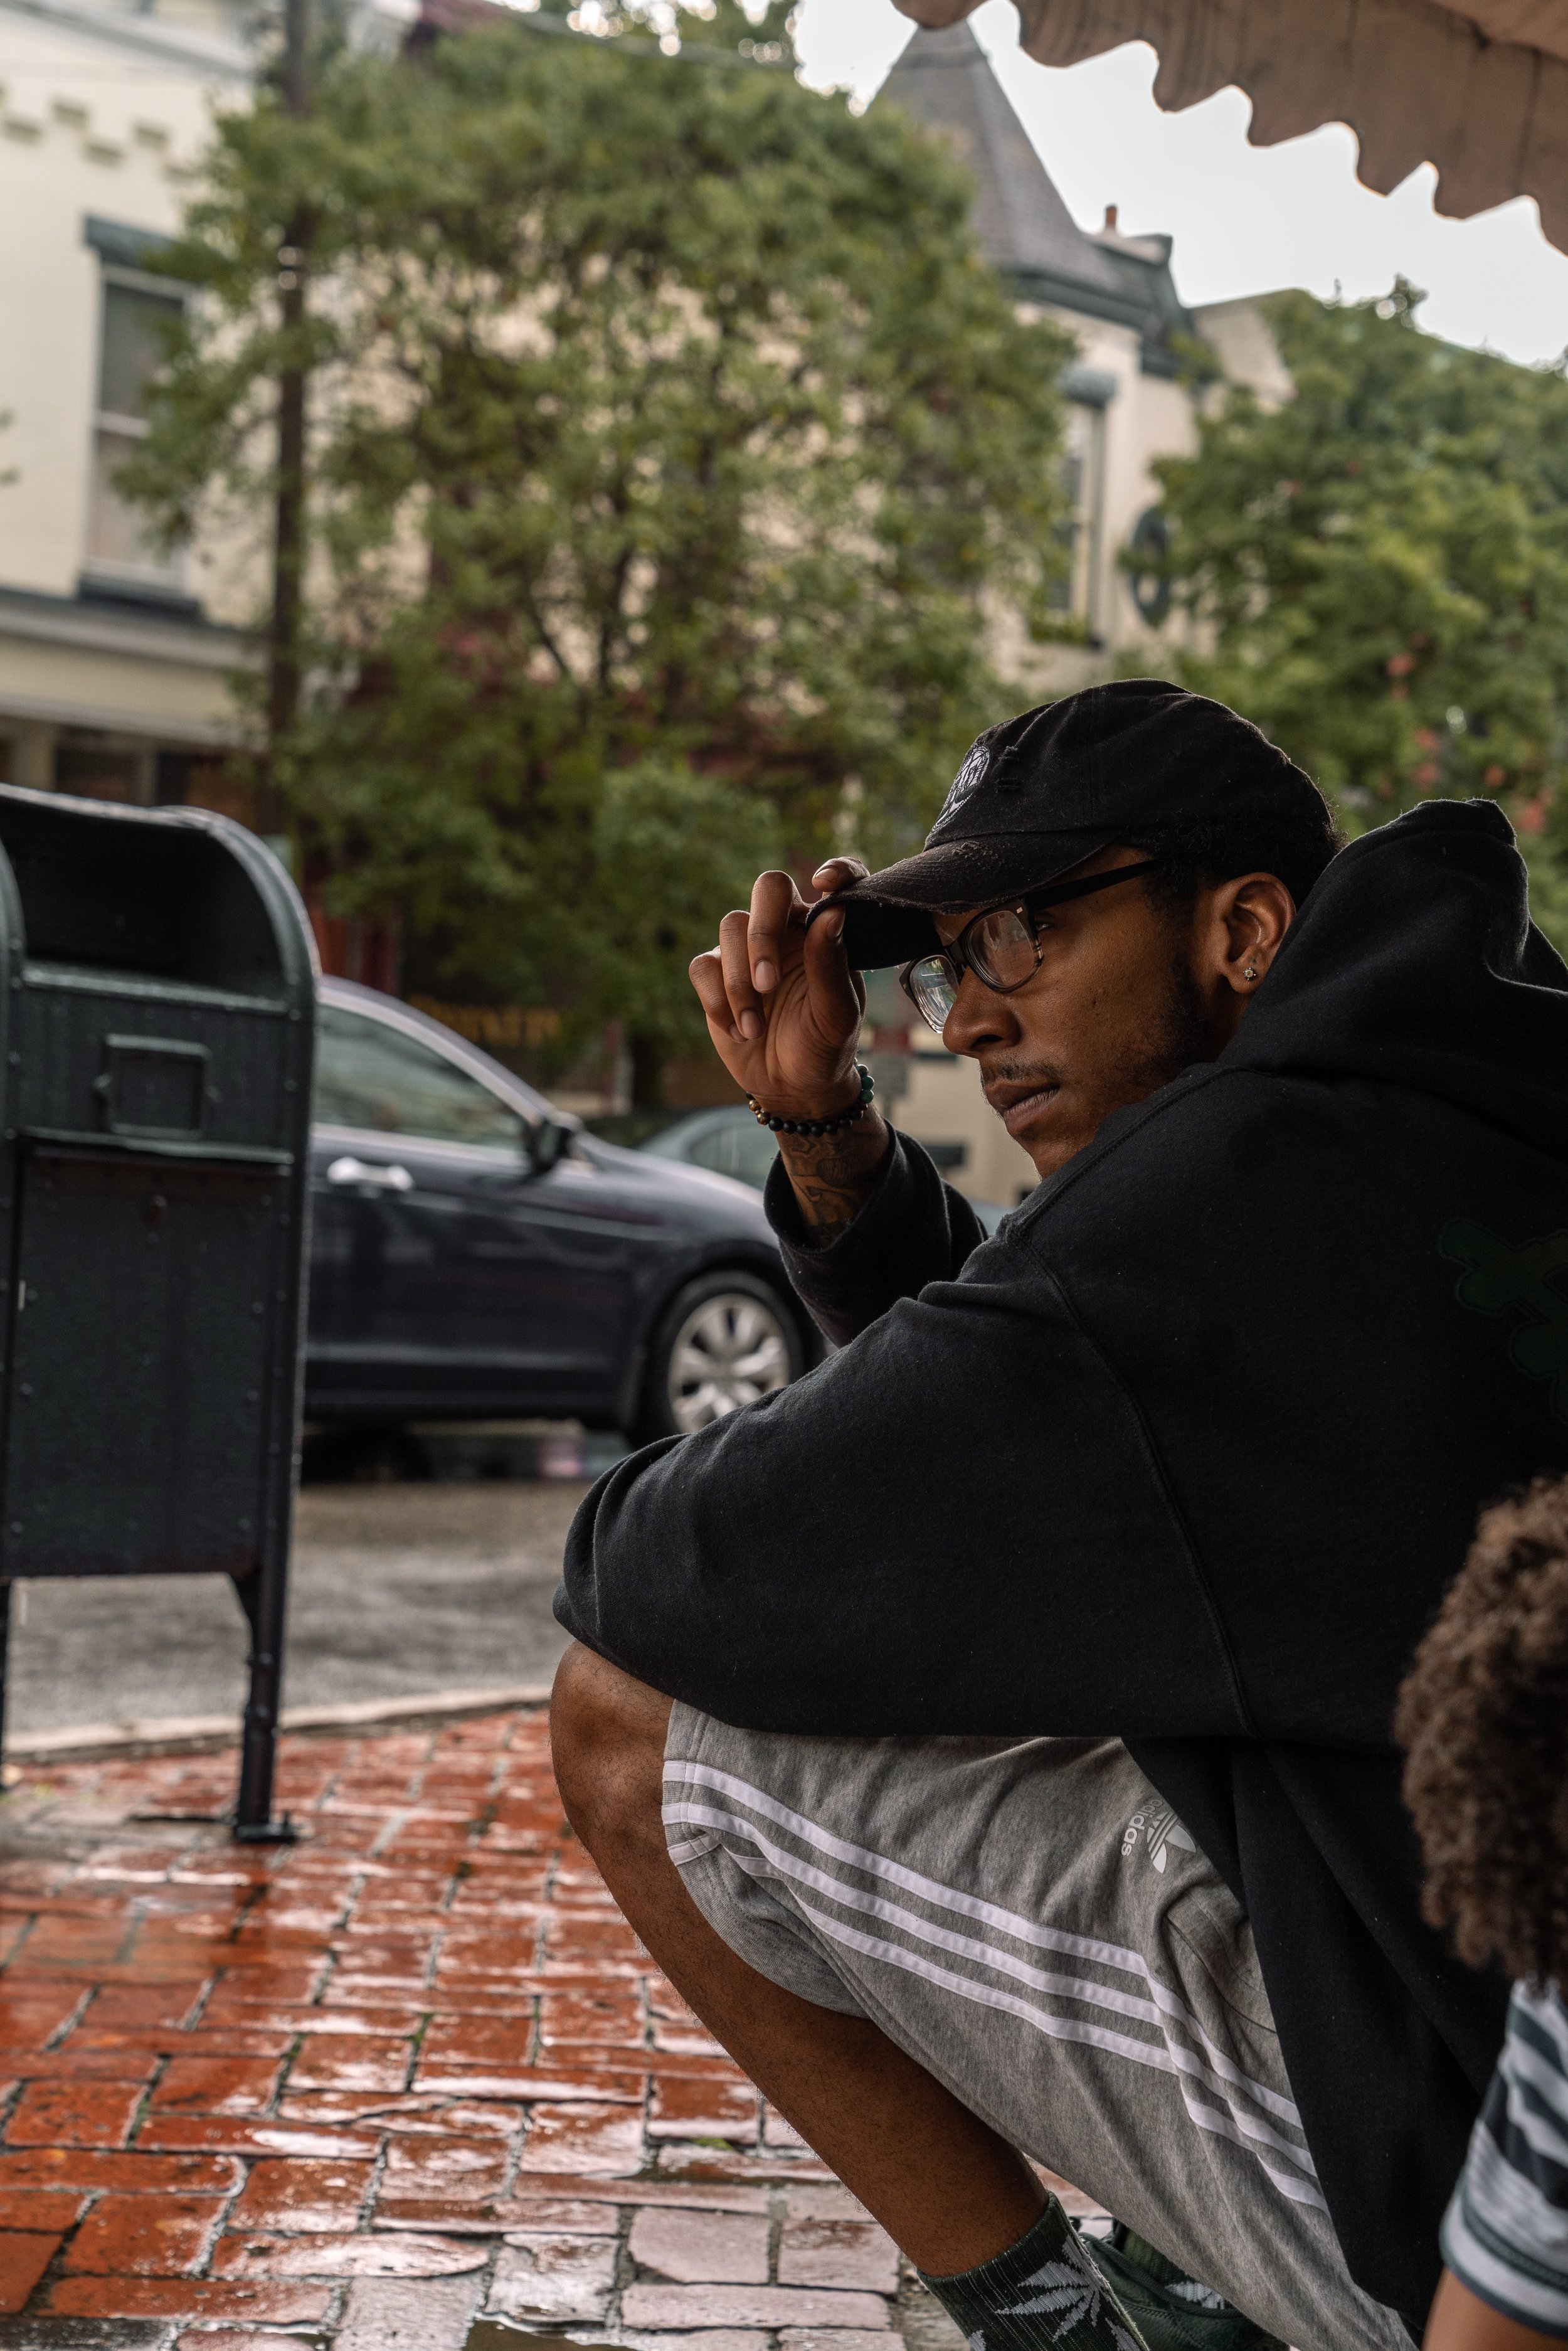 This RVA rapper is been putting in work since 2013! A diverse artist who has an extensive catalog full of beats and original lyrics to vibe to!